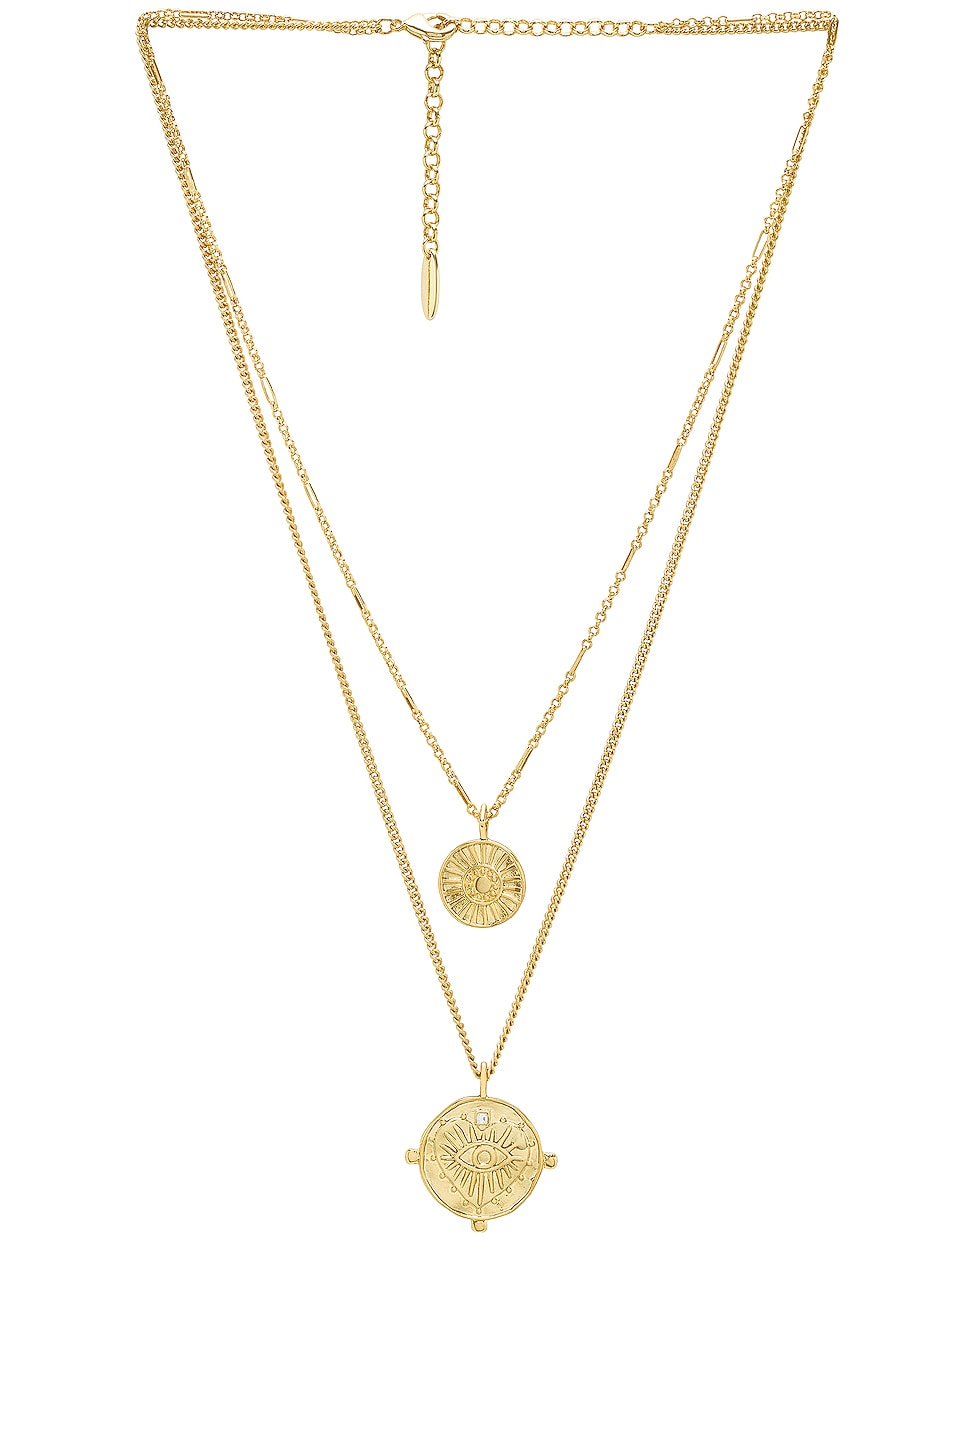 Luv AJ x REVOLVE The Double Coin Charm Necklace in Gold